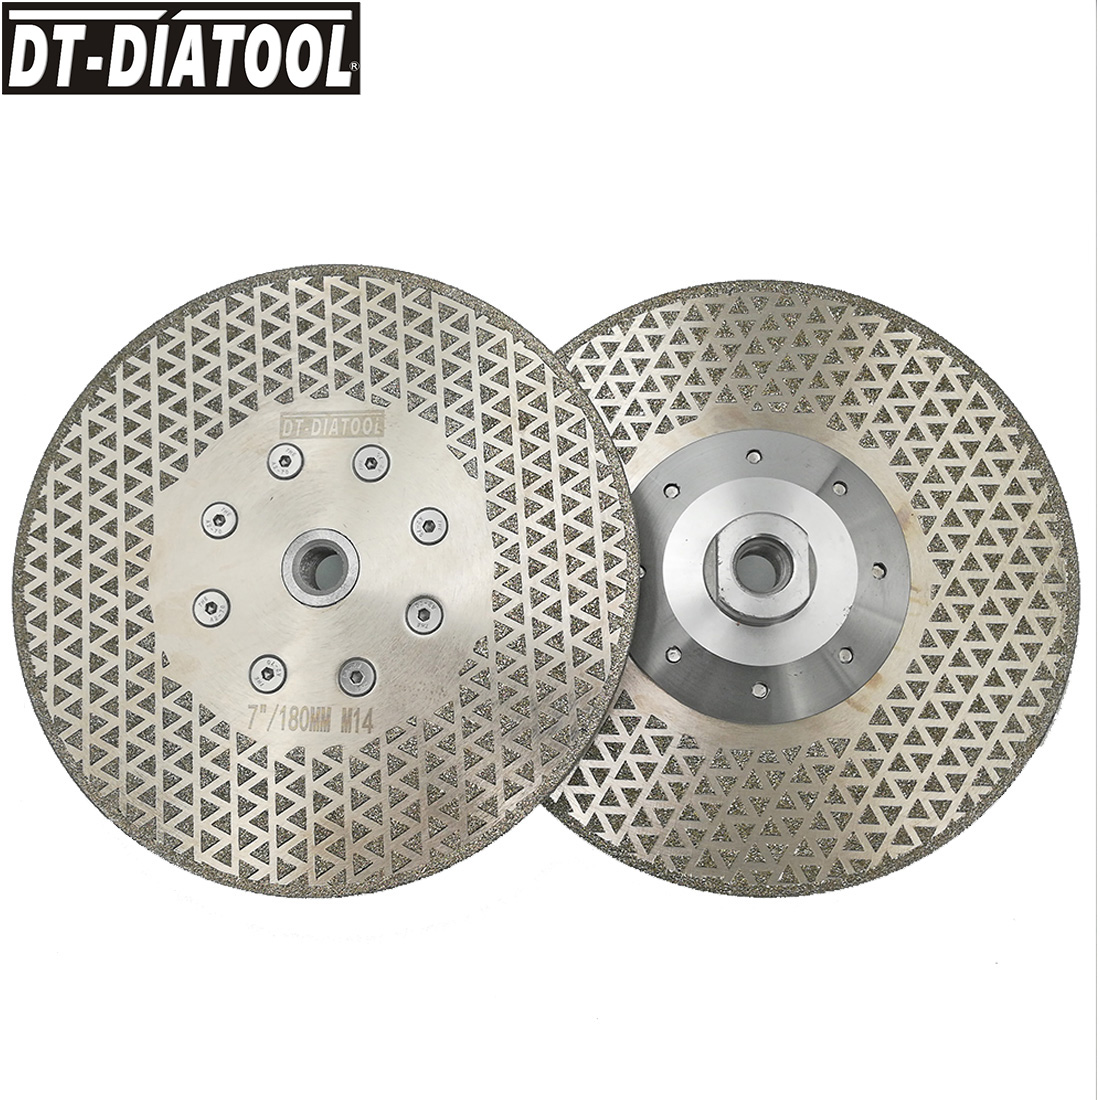 DT-DIATOOL 2pcs Electroplated Diamond Cutting Discs Stone Grinding saw blade or wheel M14 Flange for Marble or tile 7/180mm 100mm brazing cutting piece diamond grinding bowl marble grinding wheel angle grinder saw blade ceramic stone grinding